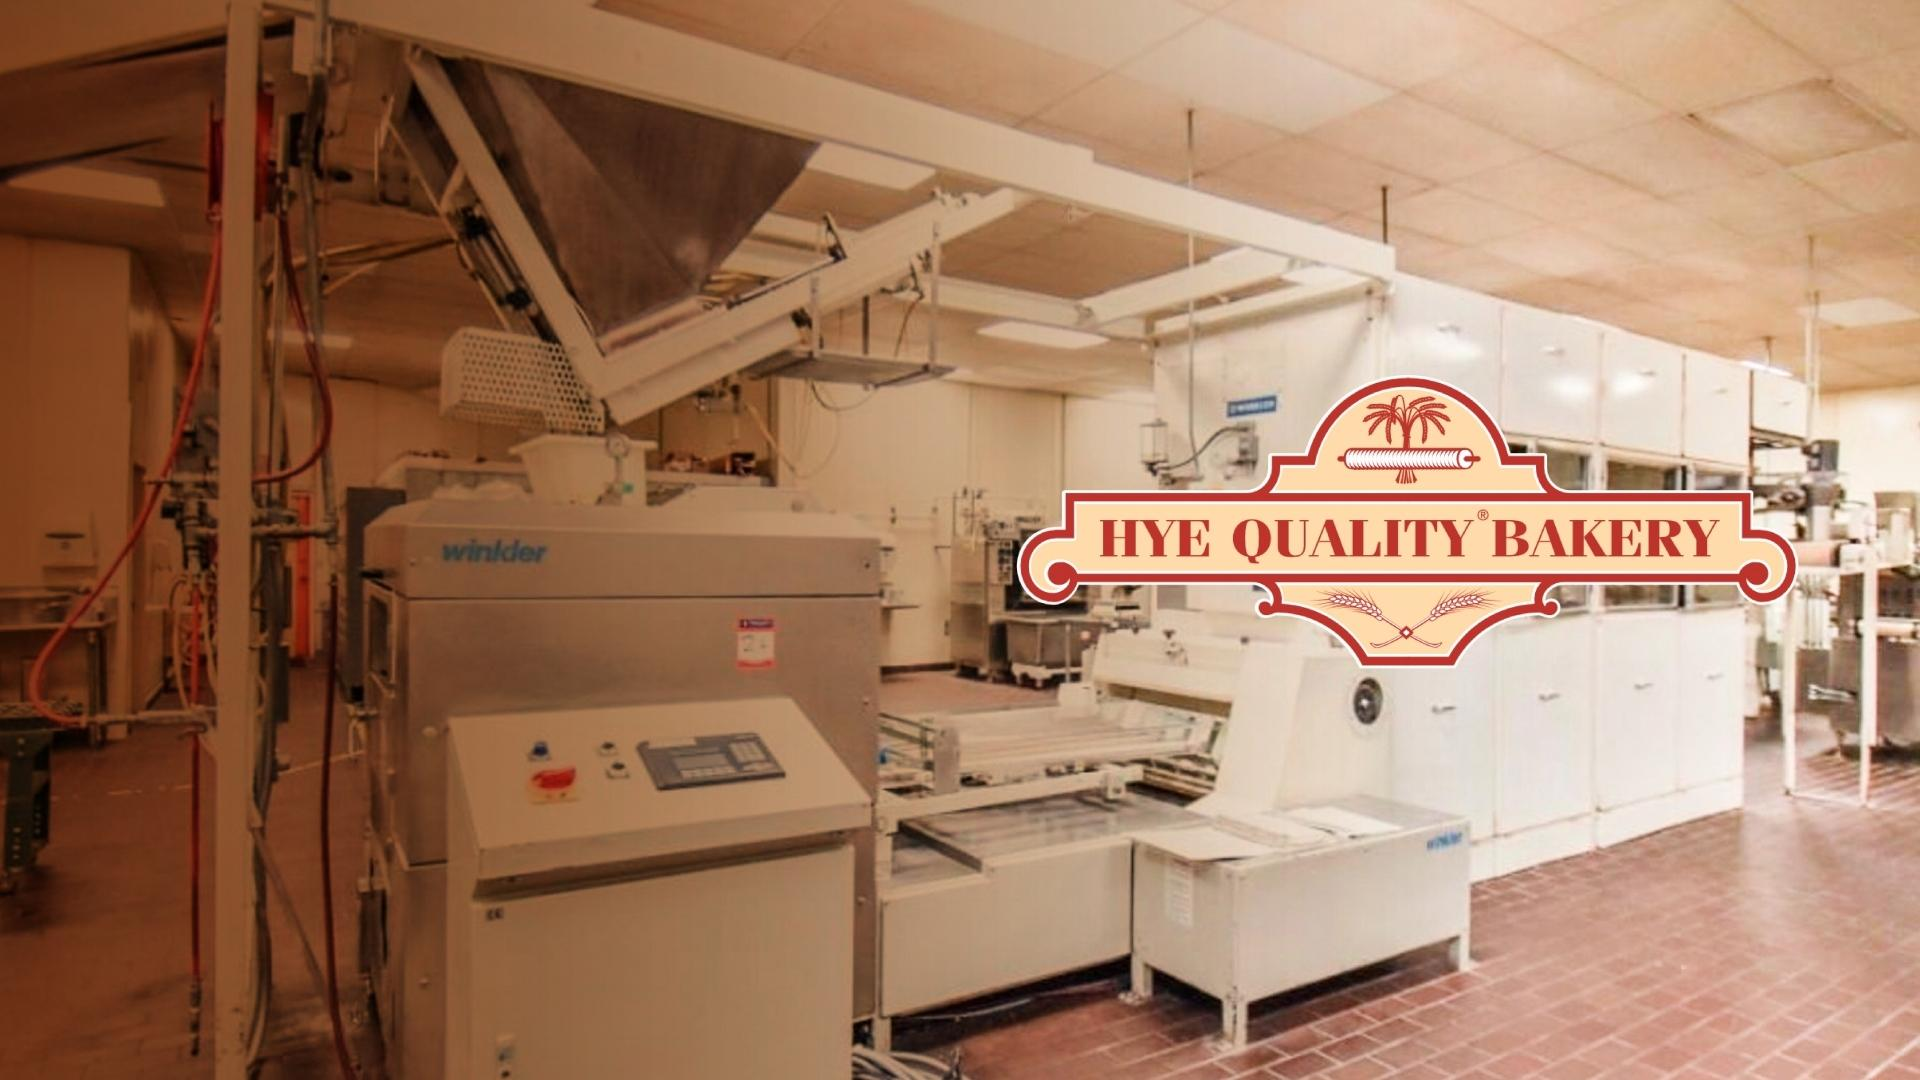 Hye Quality Bakery Complete Facility Auction